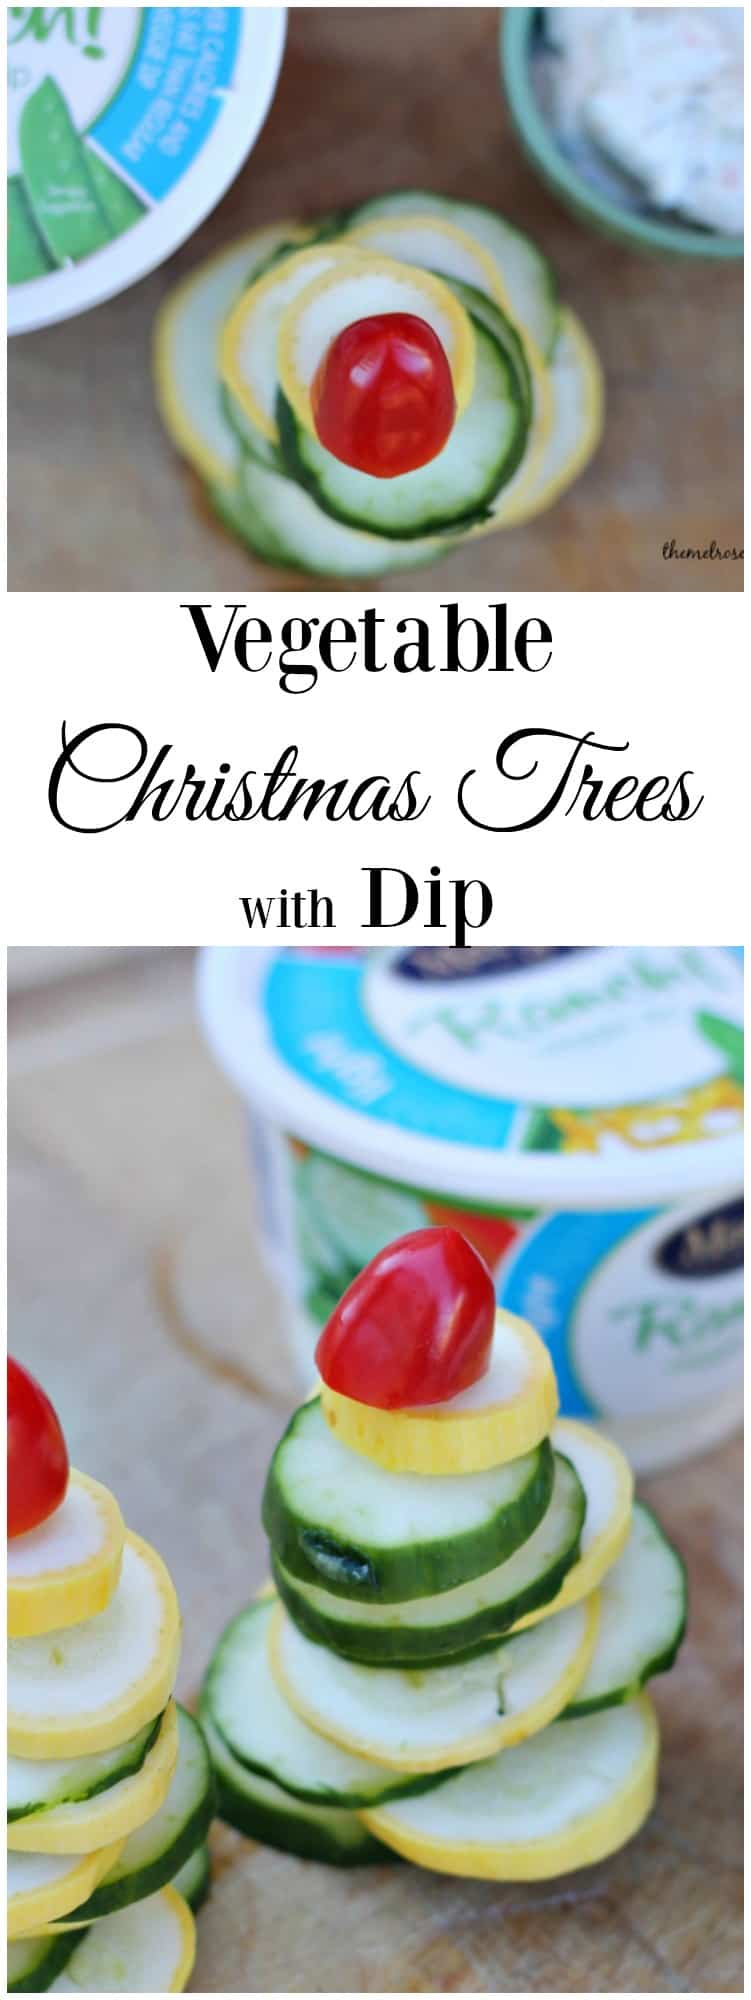 Looking for the perfect Holiday appetizer?  These vegetable Christmas Trees with Dip will even have the kids eating their veggies. #ad